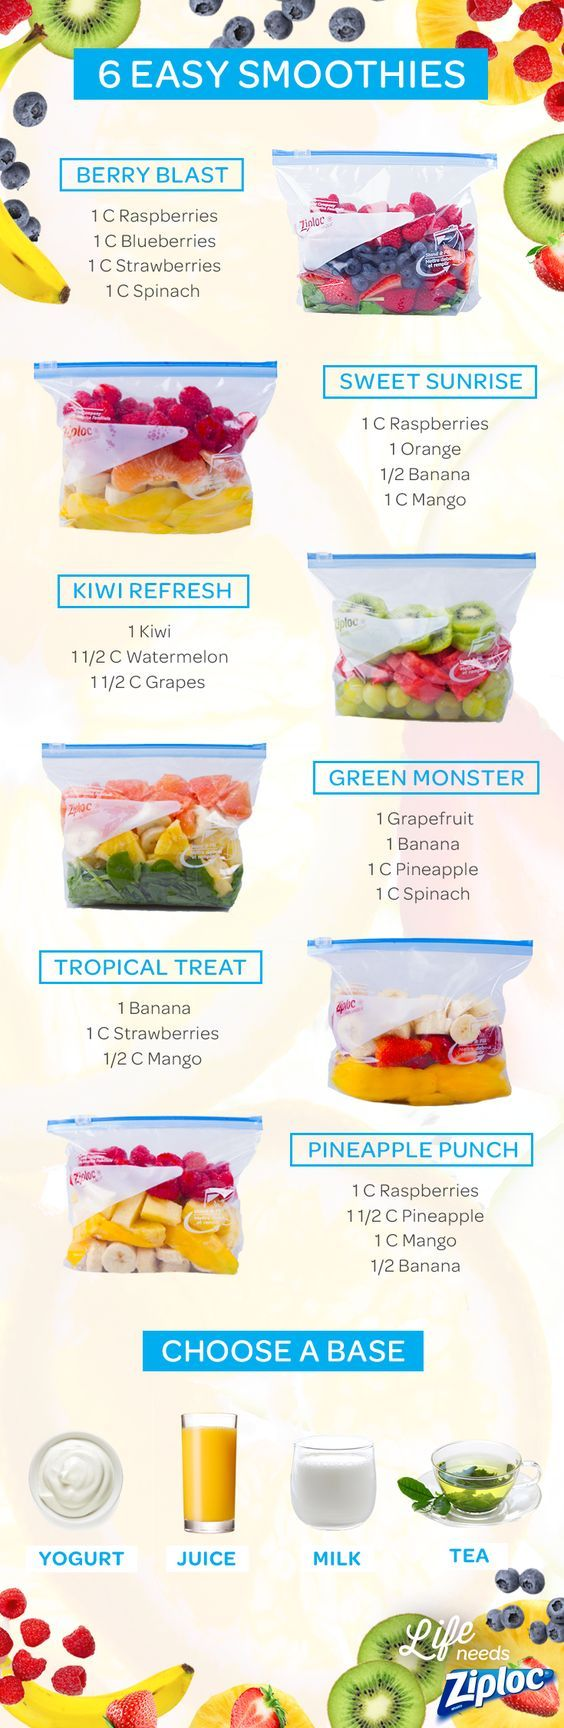 Shake up your smoothie routine with these tasty fruit and veggie combinations, featuring strawberries, raspberries, spinach, mango, banana, kiwi, and grapes. Each recipe can be pre-portioned in a Ziploc® bag and frozen ahead of time. Then you can just grab a bag, let it thaw, add yogurt, juice, milk, or tea as your liquid base, and blend. These smoothie ideas are perfect for kids or your morning breakfast.